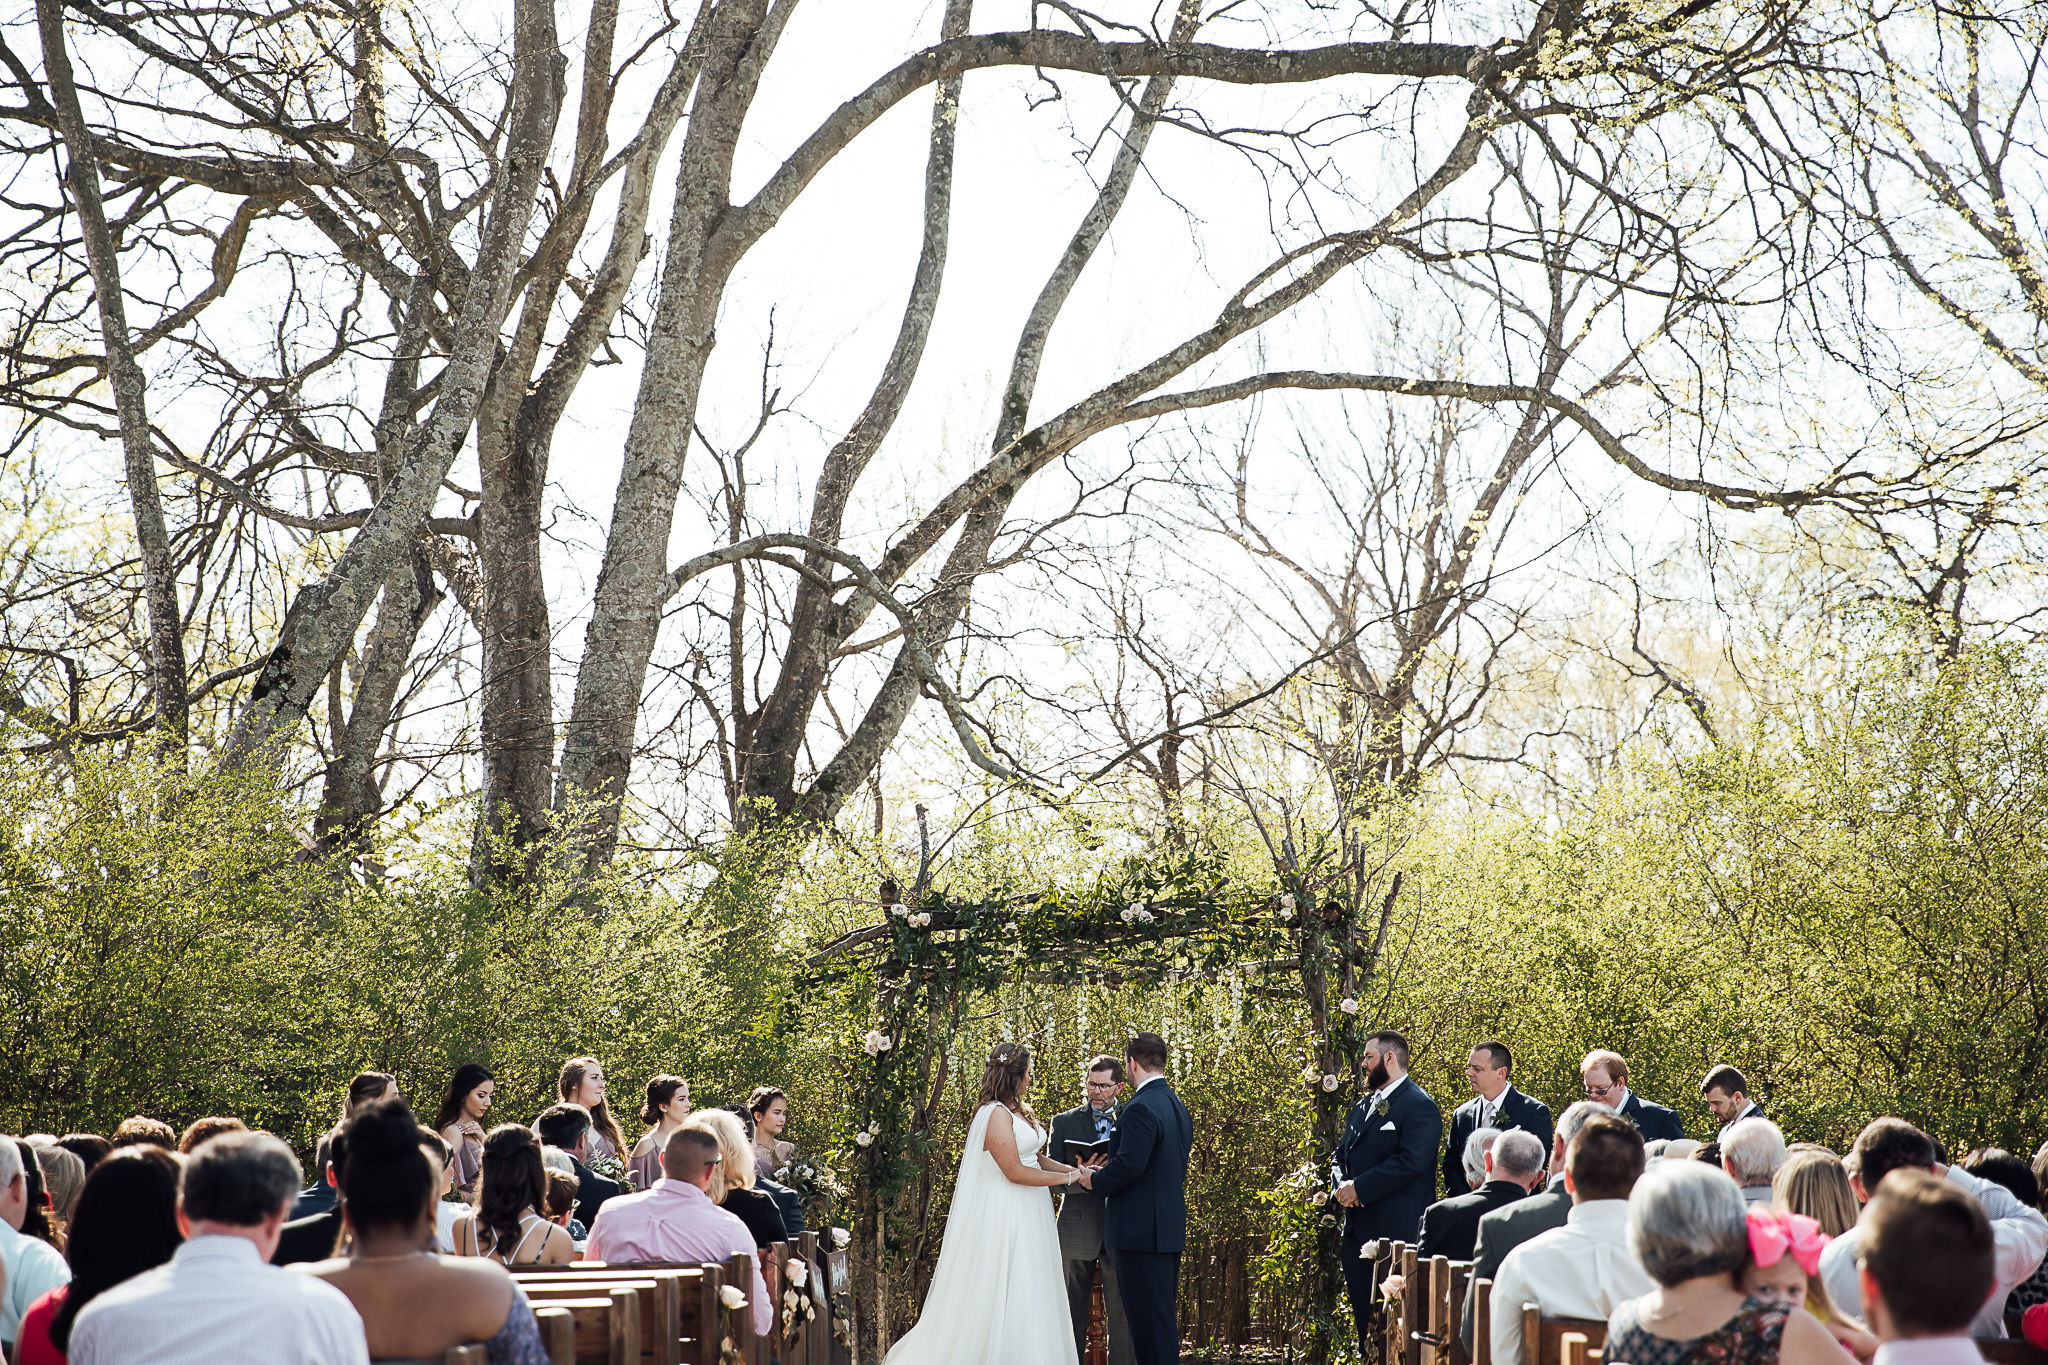 memphis-wedding-photographer-meadow-hill-farms-thewarmtharoundyou (36 of 93).jpg